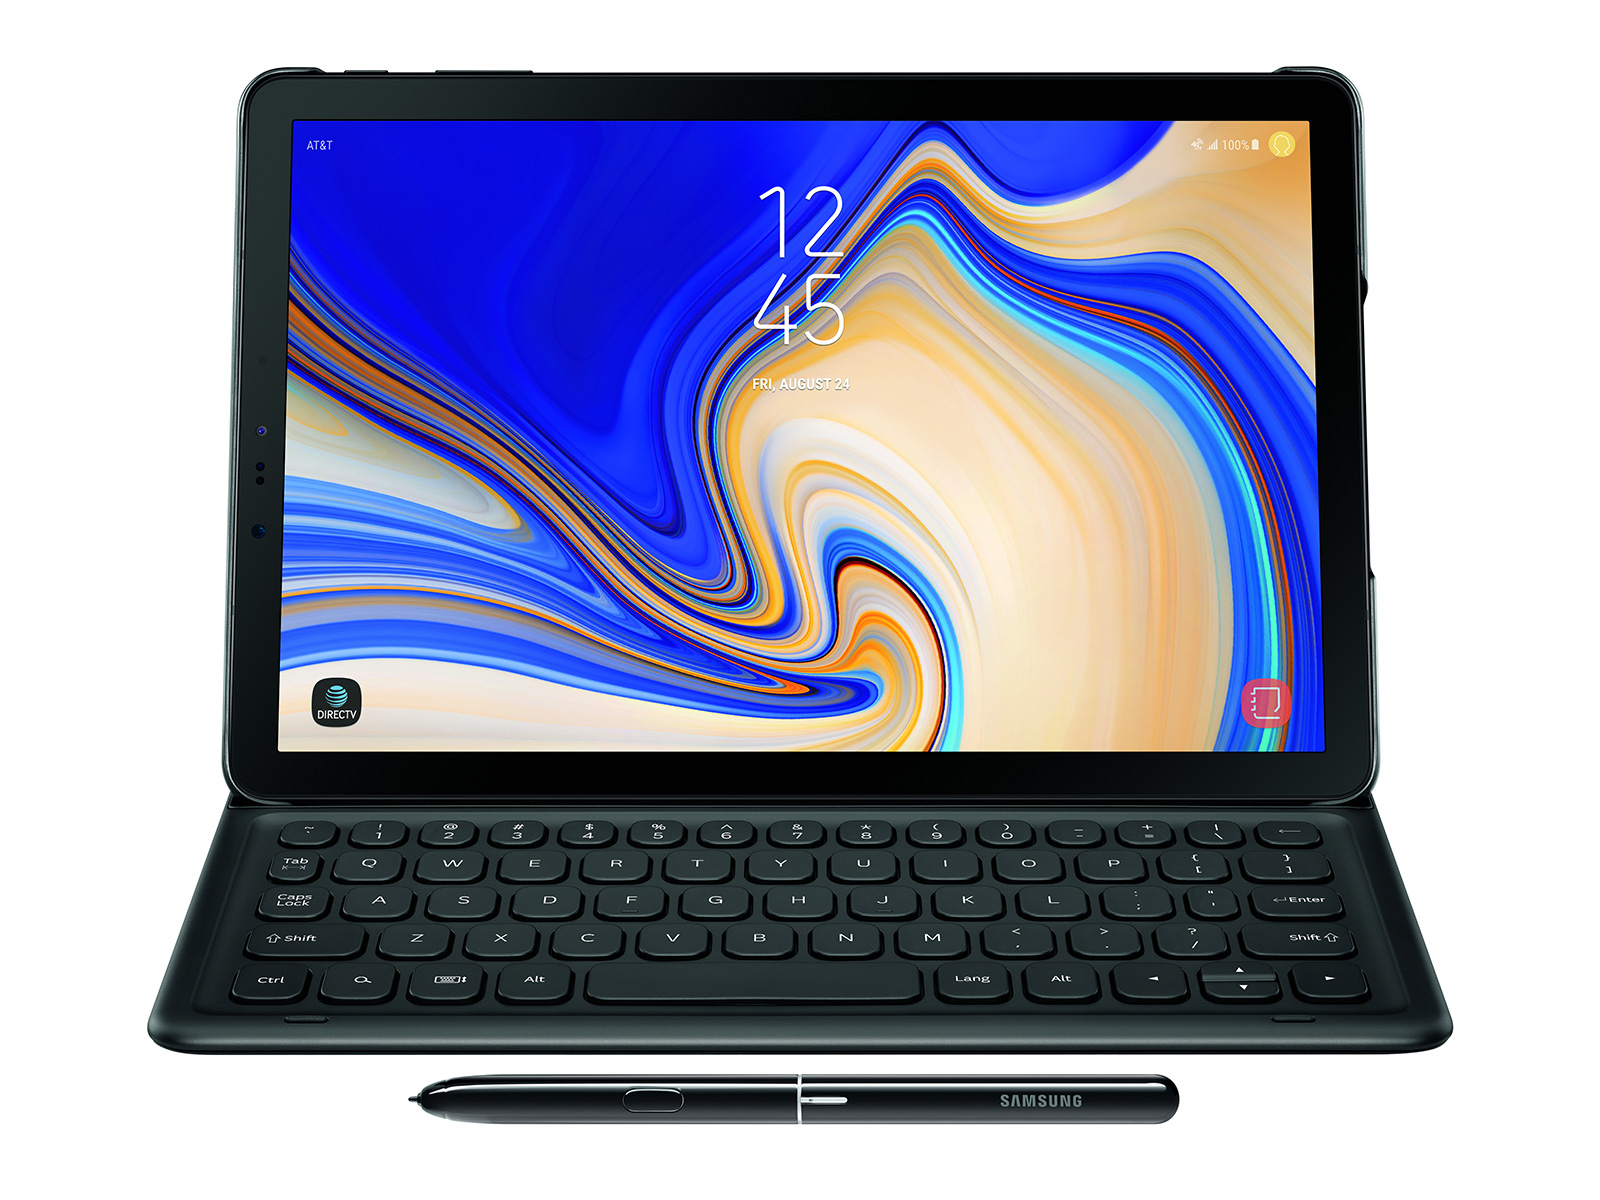 wholesale dealer ba510 9393c Galaxy Tab S4 Book Cover Keyboard Mobile Accessories - EJ-FT830UBEGUJ |  Samsung US